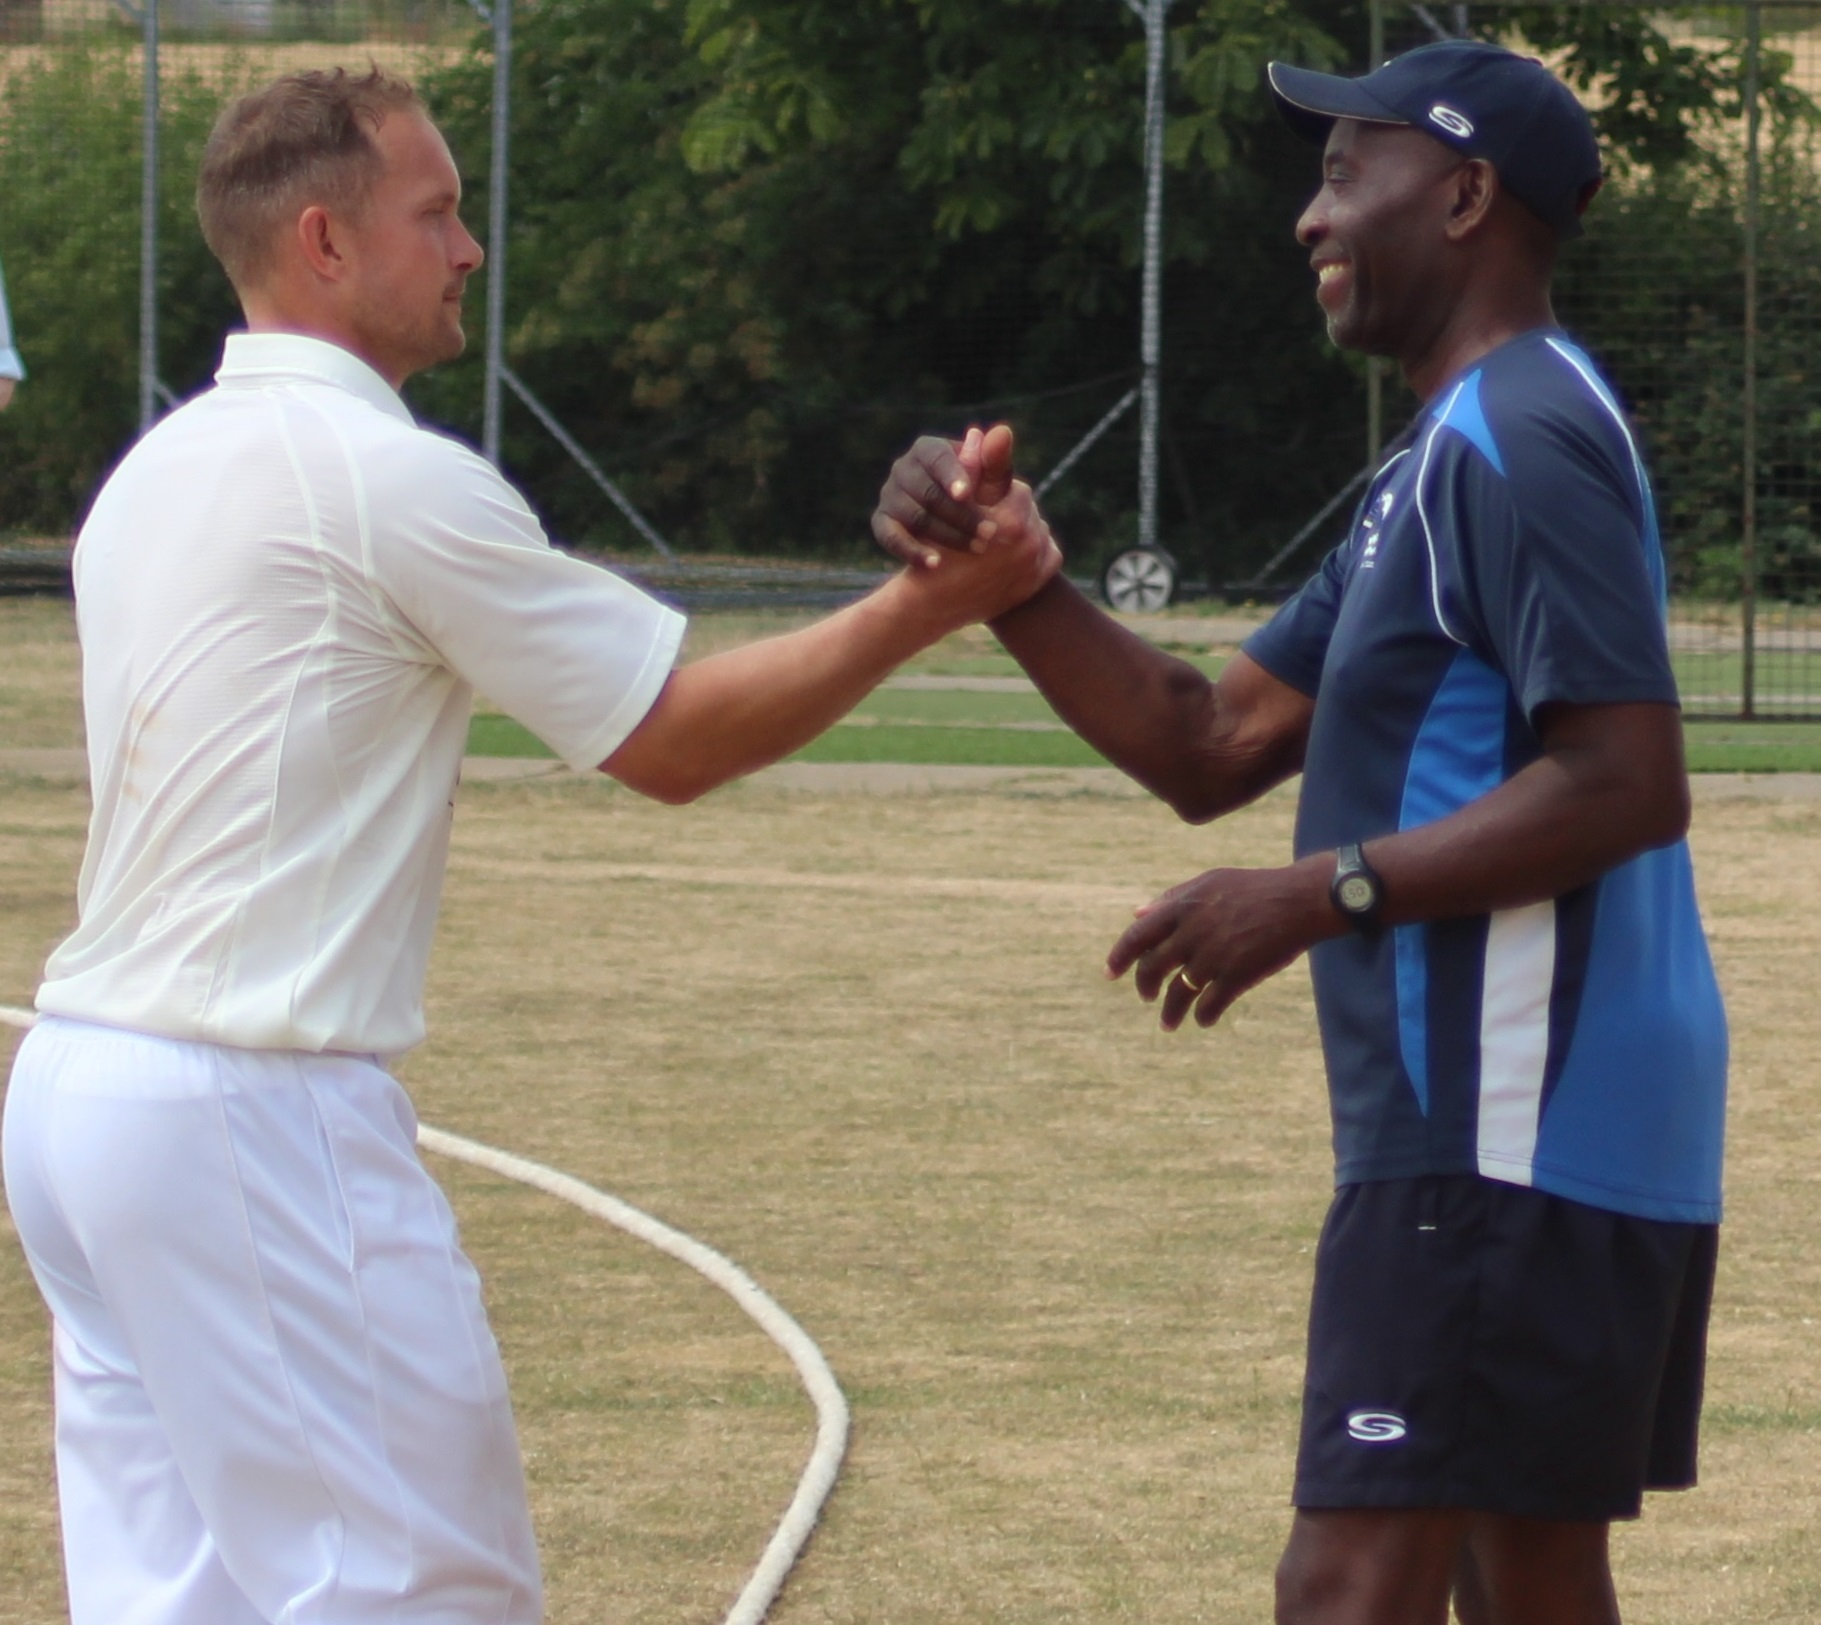 STAR MAN: Gareth Andrew is congratulated by head coach Rupert Evans after his match-winning performance helped Oxfordshire beat Dorset by 121 runs in the Unicorns Counties Championship Picture: Nick Pinhol